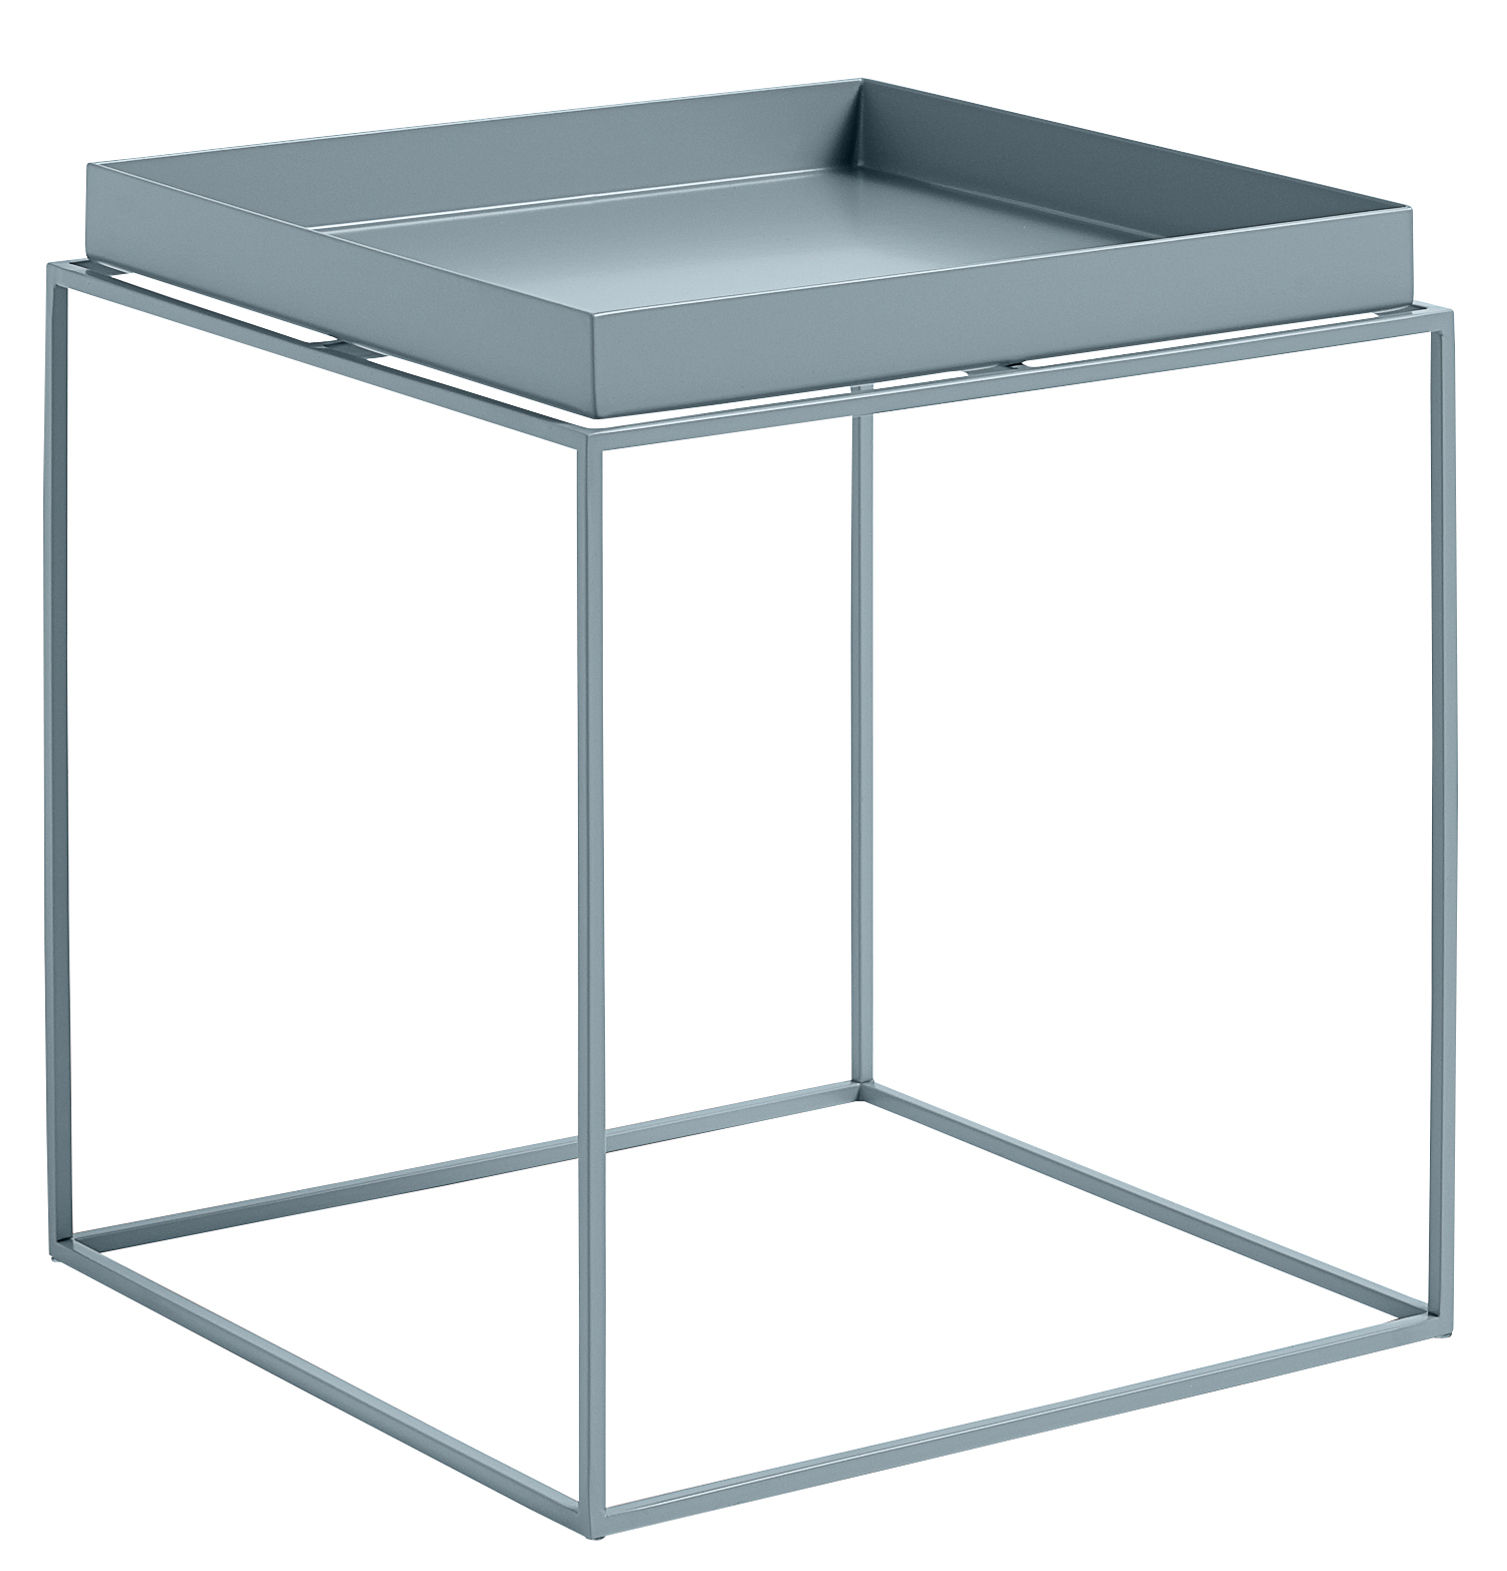 Furniture - Coffee Tables - Tray Coffee table - Square - H 40 cm / 40 x 40 cm by Hay - Blue - Lacquered steel